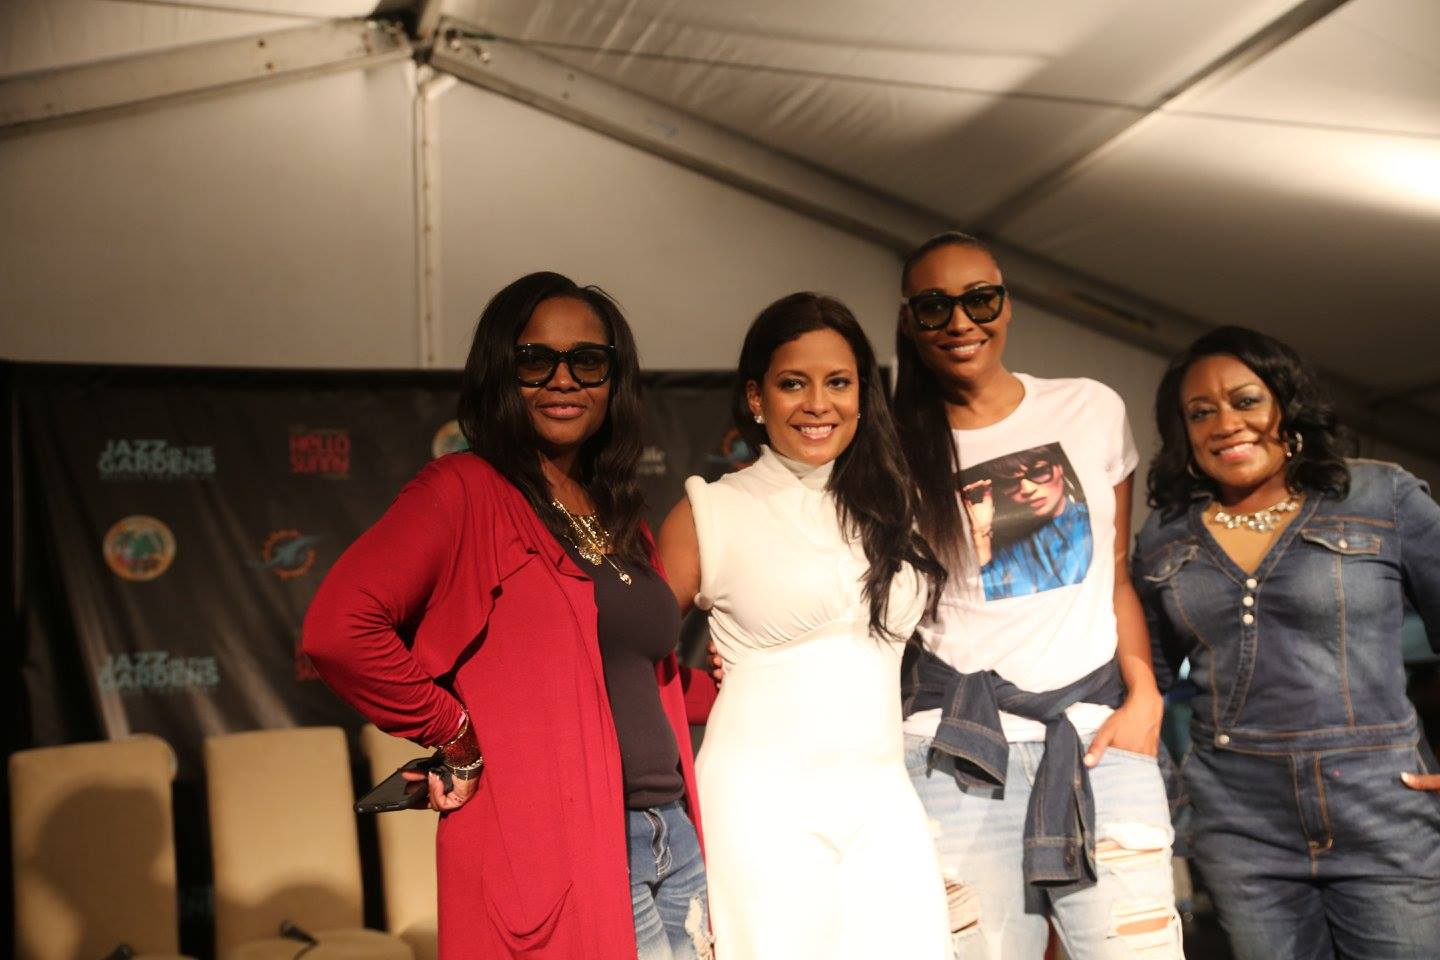 ENTERTAINMENT: Miami Gardens, Fla. - Women's Impact Luncheon Speakers Dr. Heavenly Kimes, Lisa Nicole Cloud, Cynthia Bailey, and Dee Thompson at Jazz in the Gardens 2016. Photo: Mellissa Thomas/Florida National News.